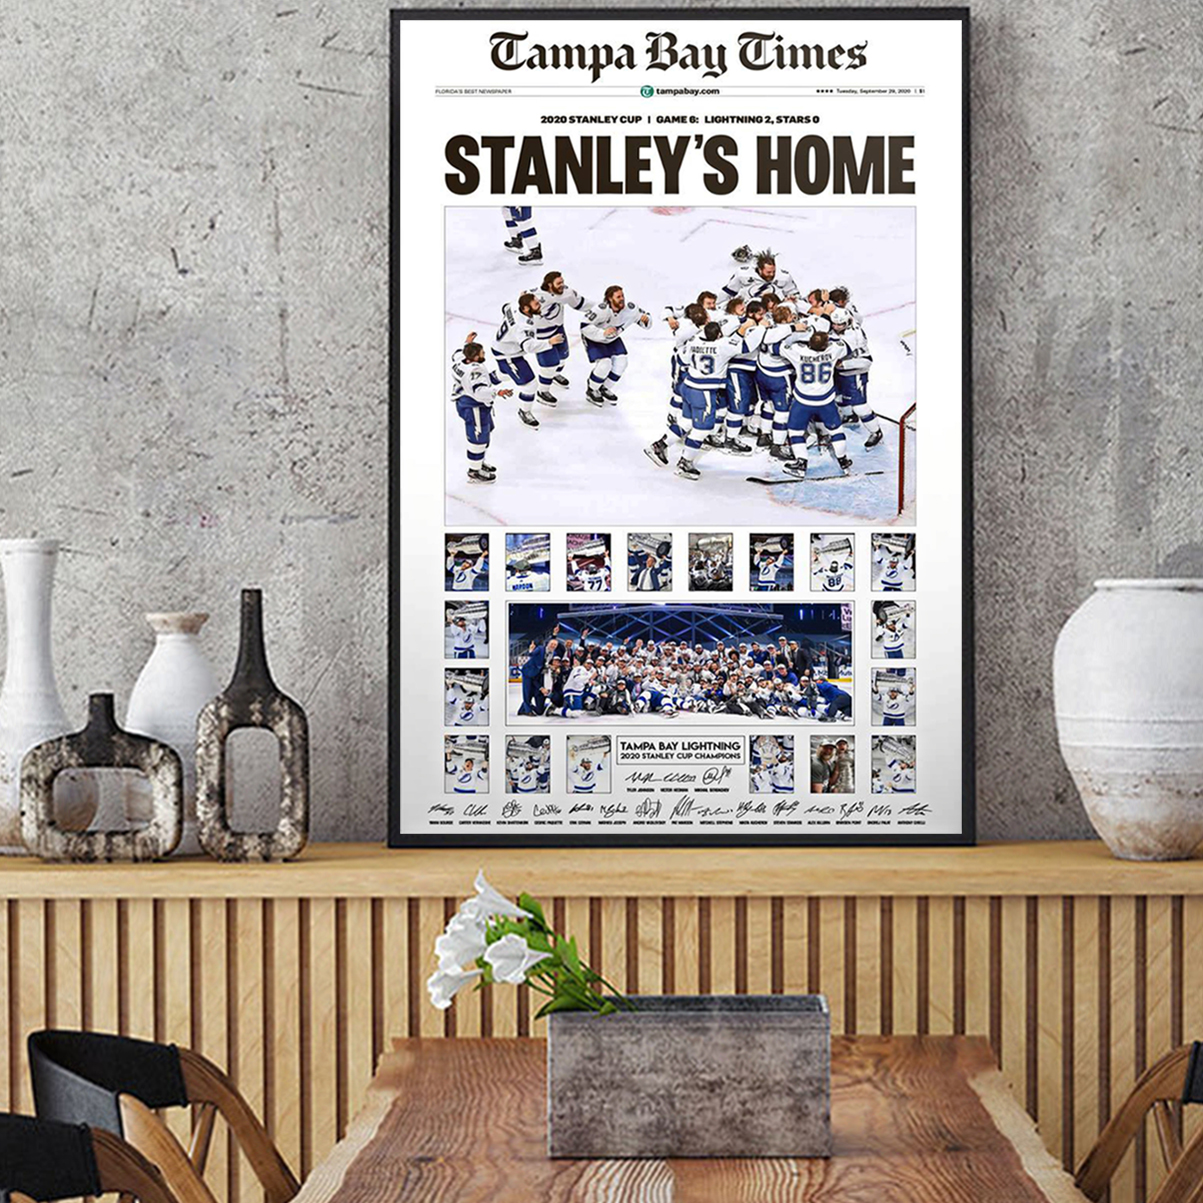 Tampa bay times stanley's home poster A2